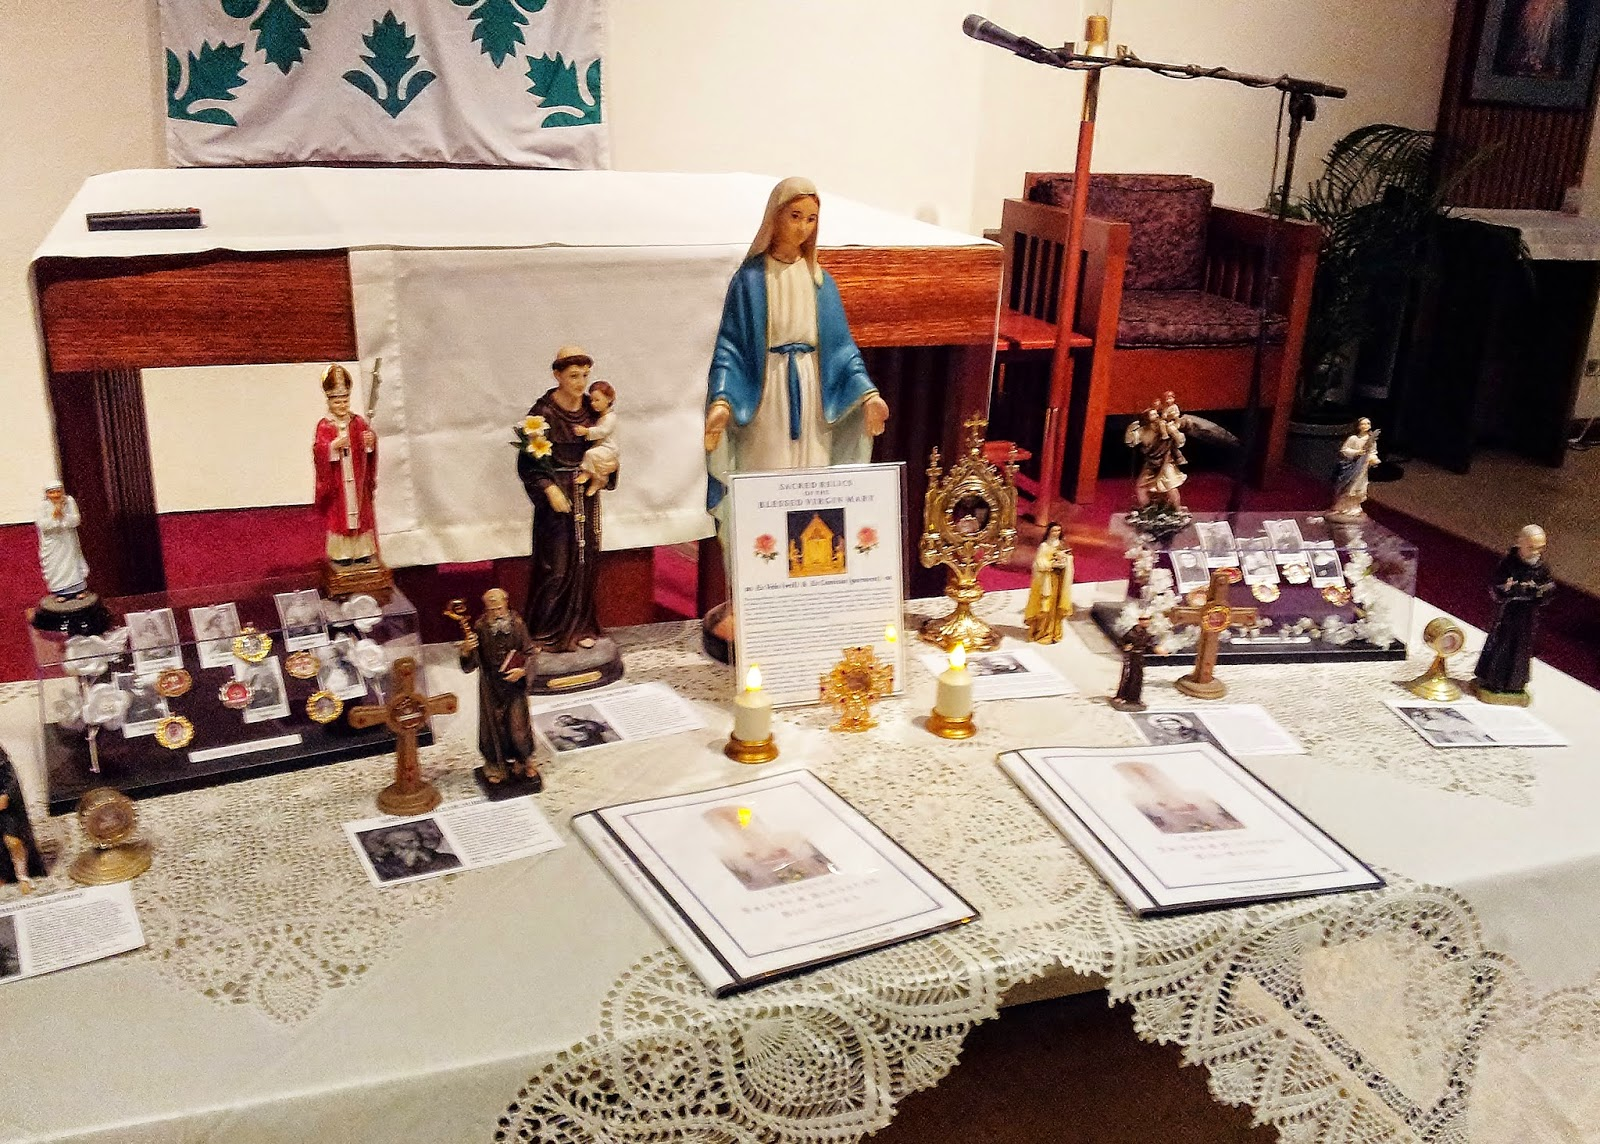 19 sacred relics from various saints blesseds were on display during my 6 12 presentation at st anthony of padua church in kailua